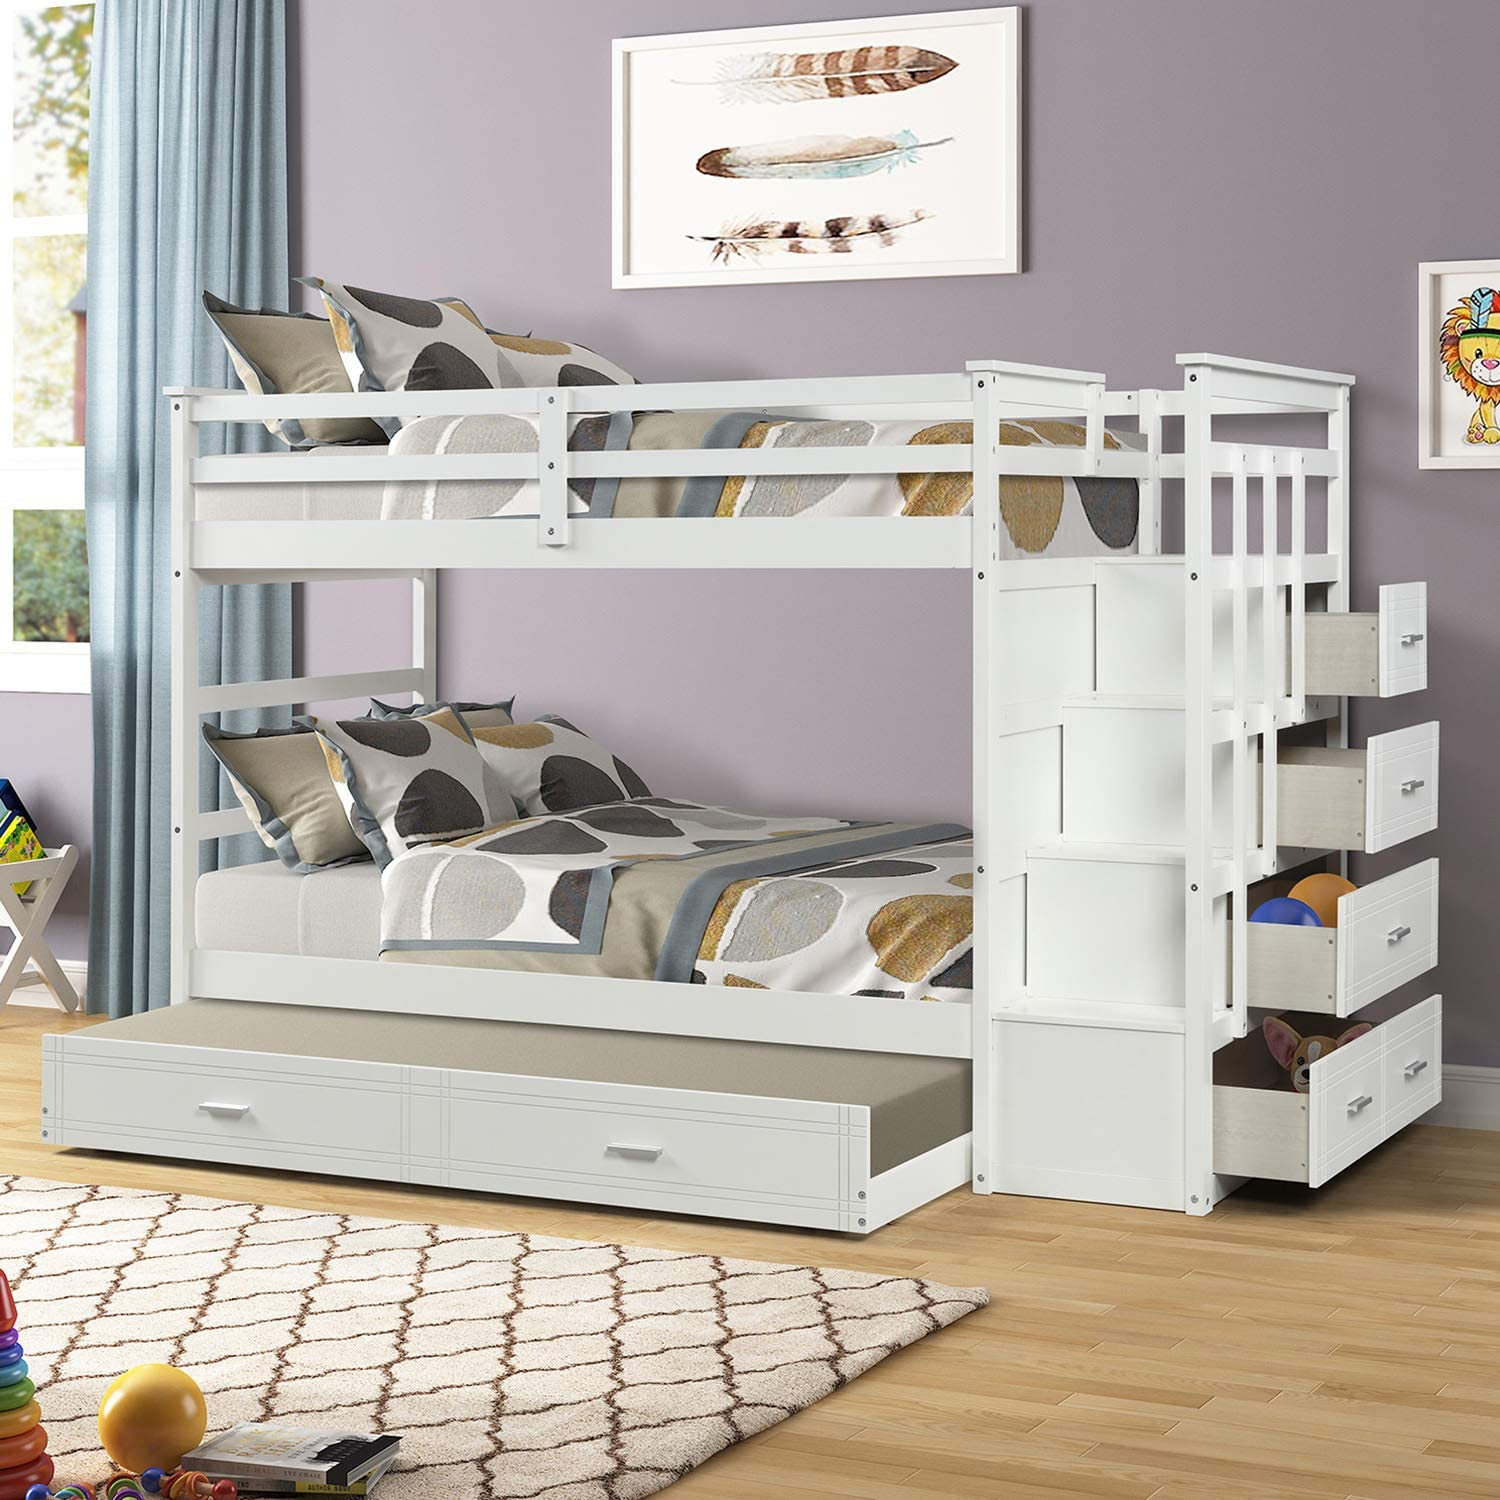 P PURLOVE Twin Over Twin Bunk Bed Wood Bunk Bed for Teens Girls Boys with Trundle Bed and Staircase and Storage Drawers, White